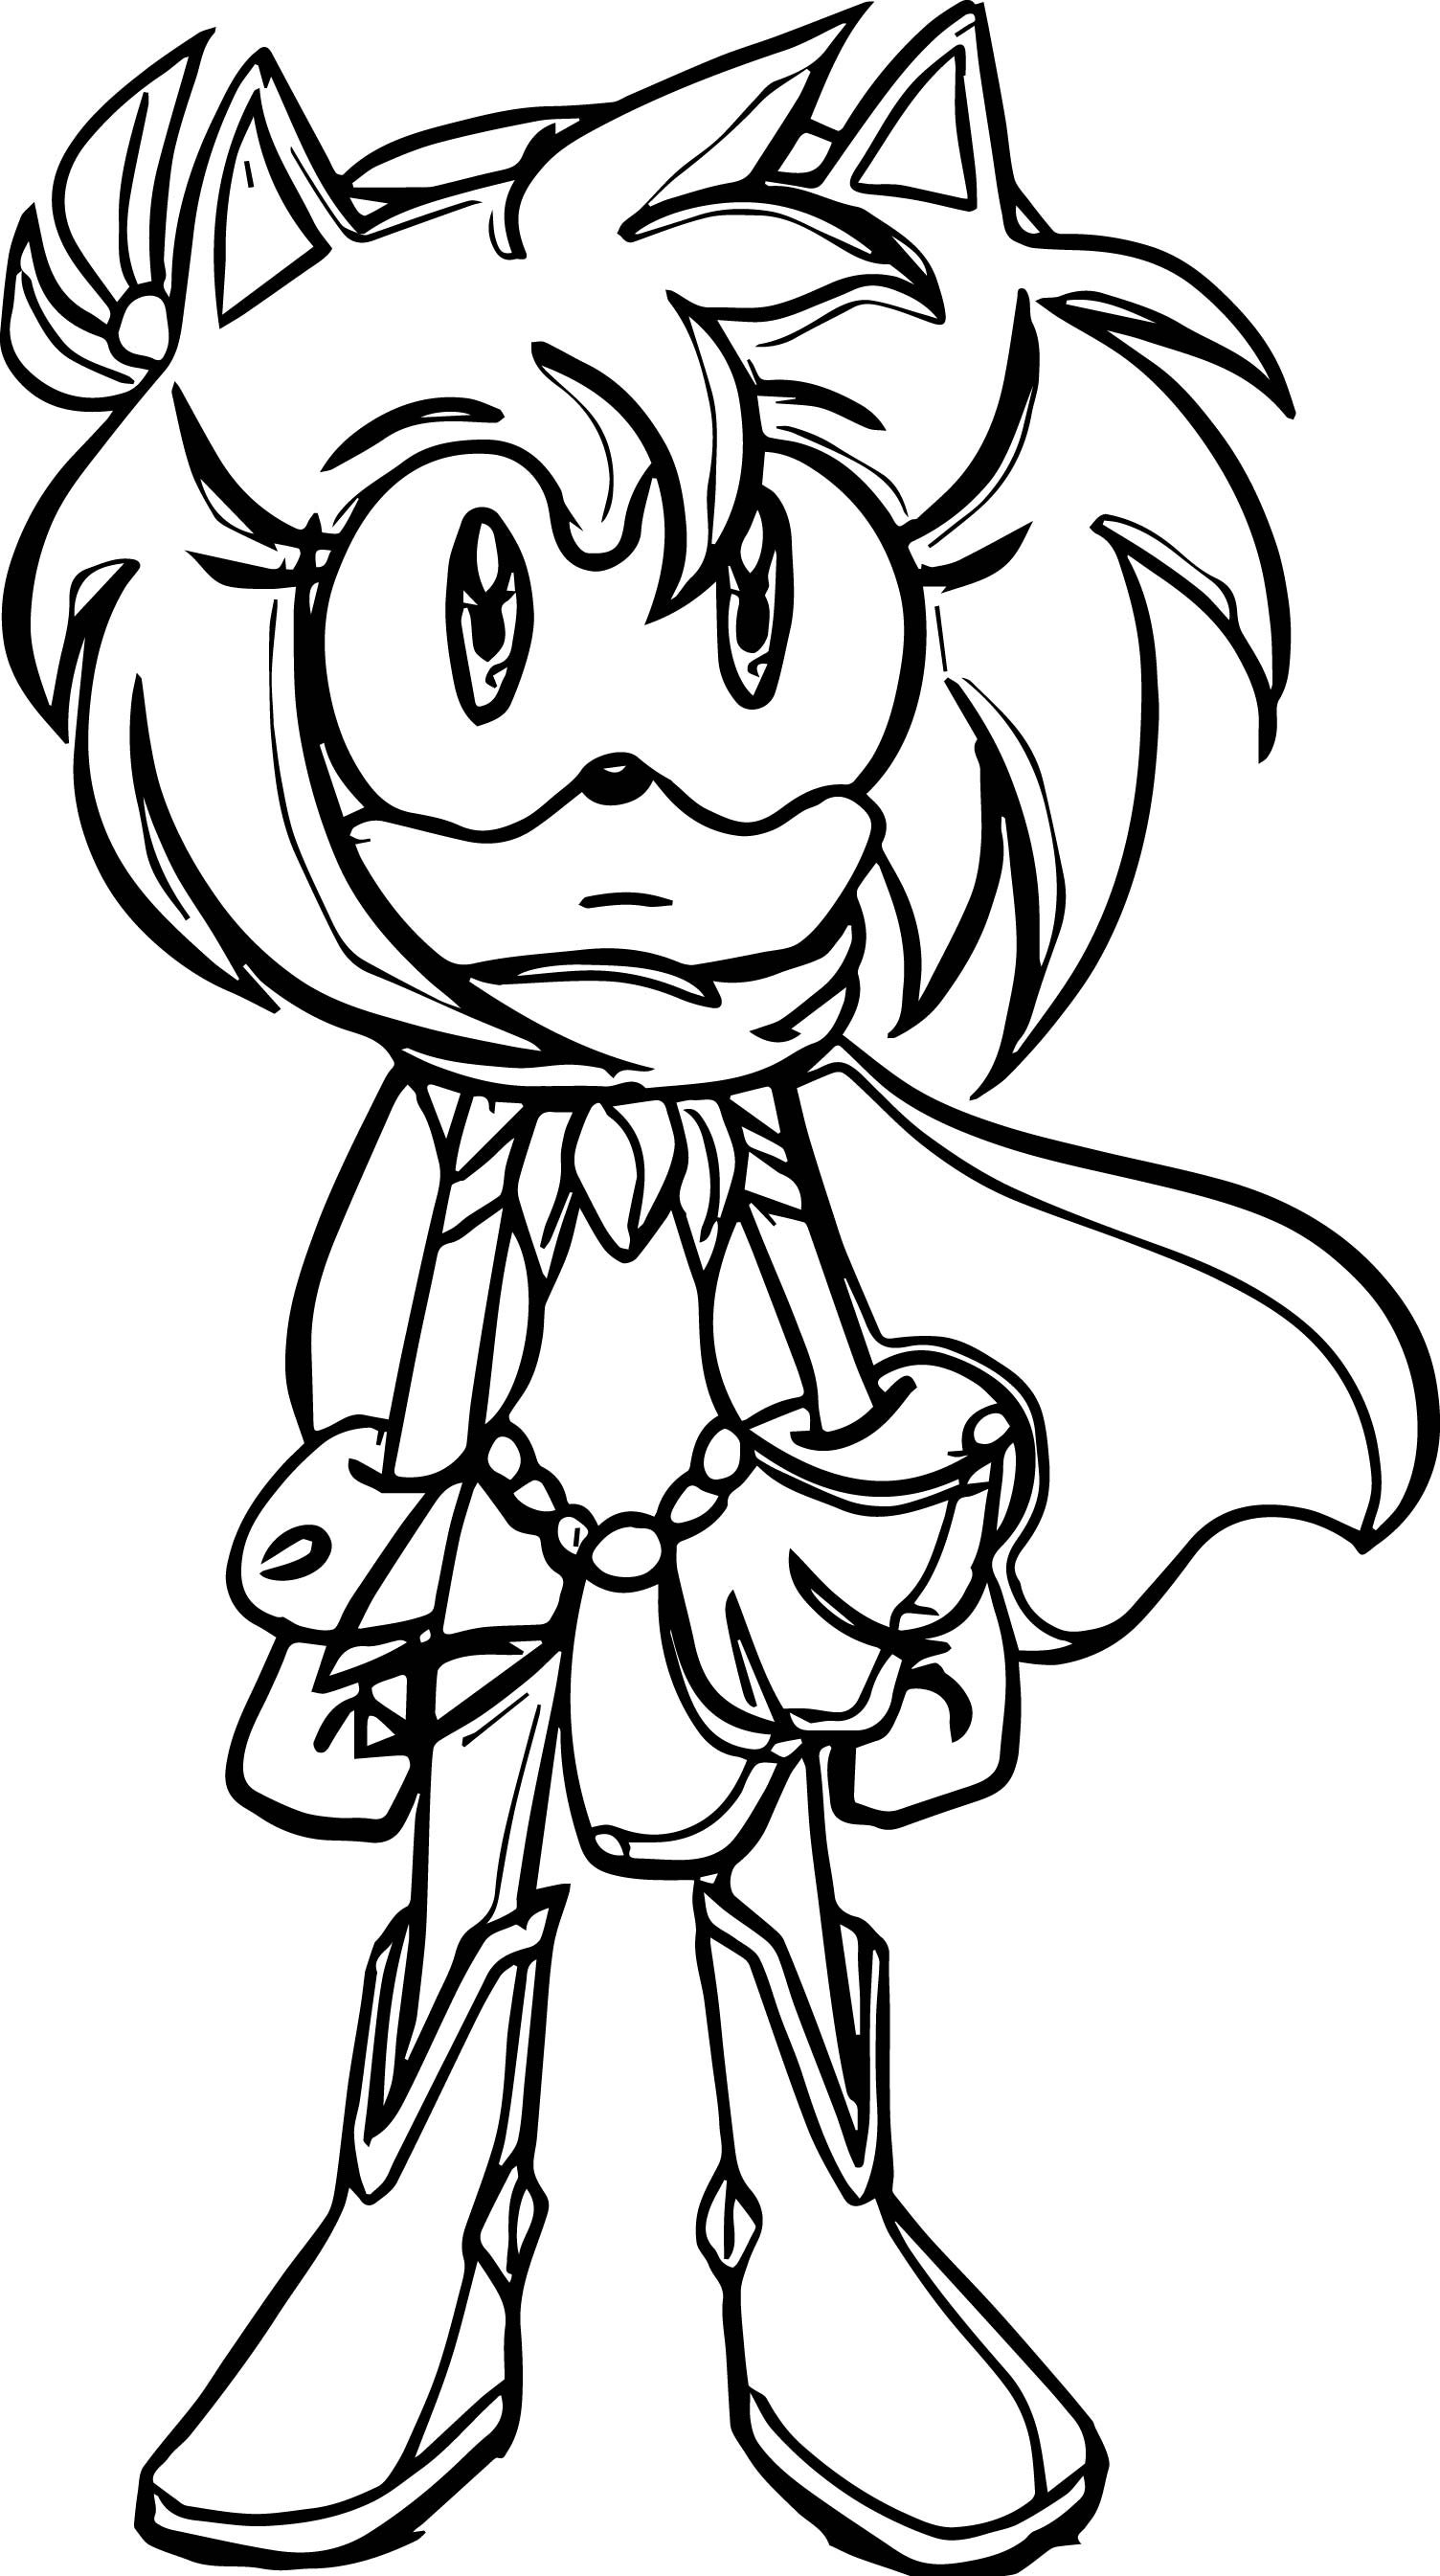 Amy Rose Wind Coloring Page